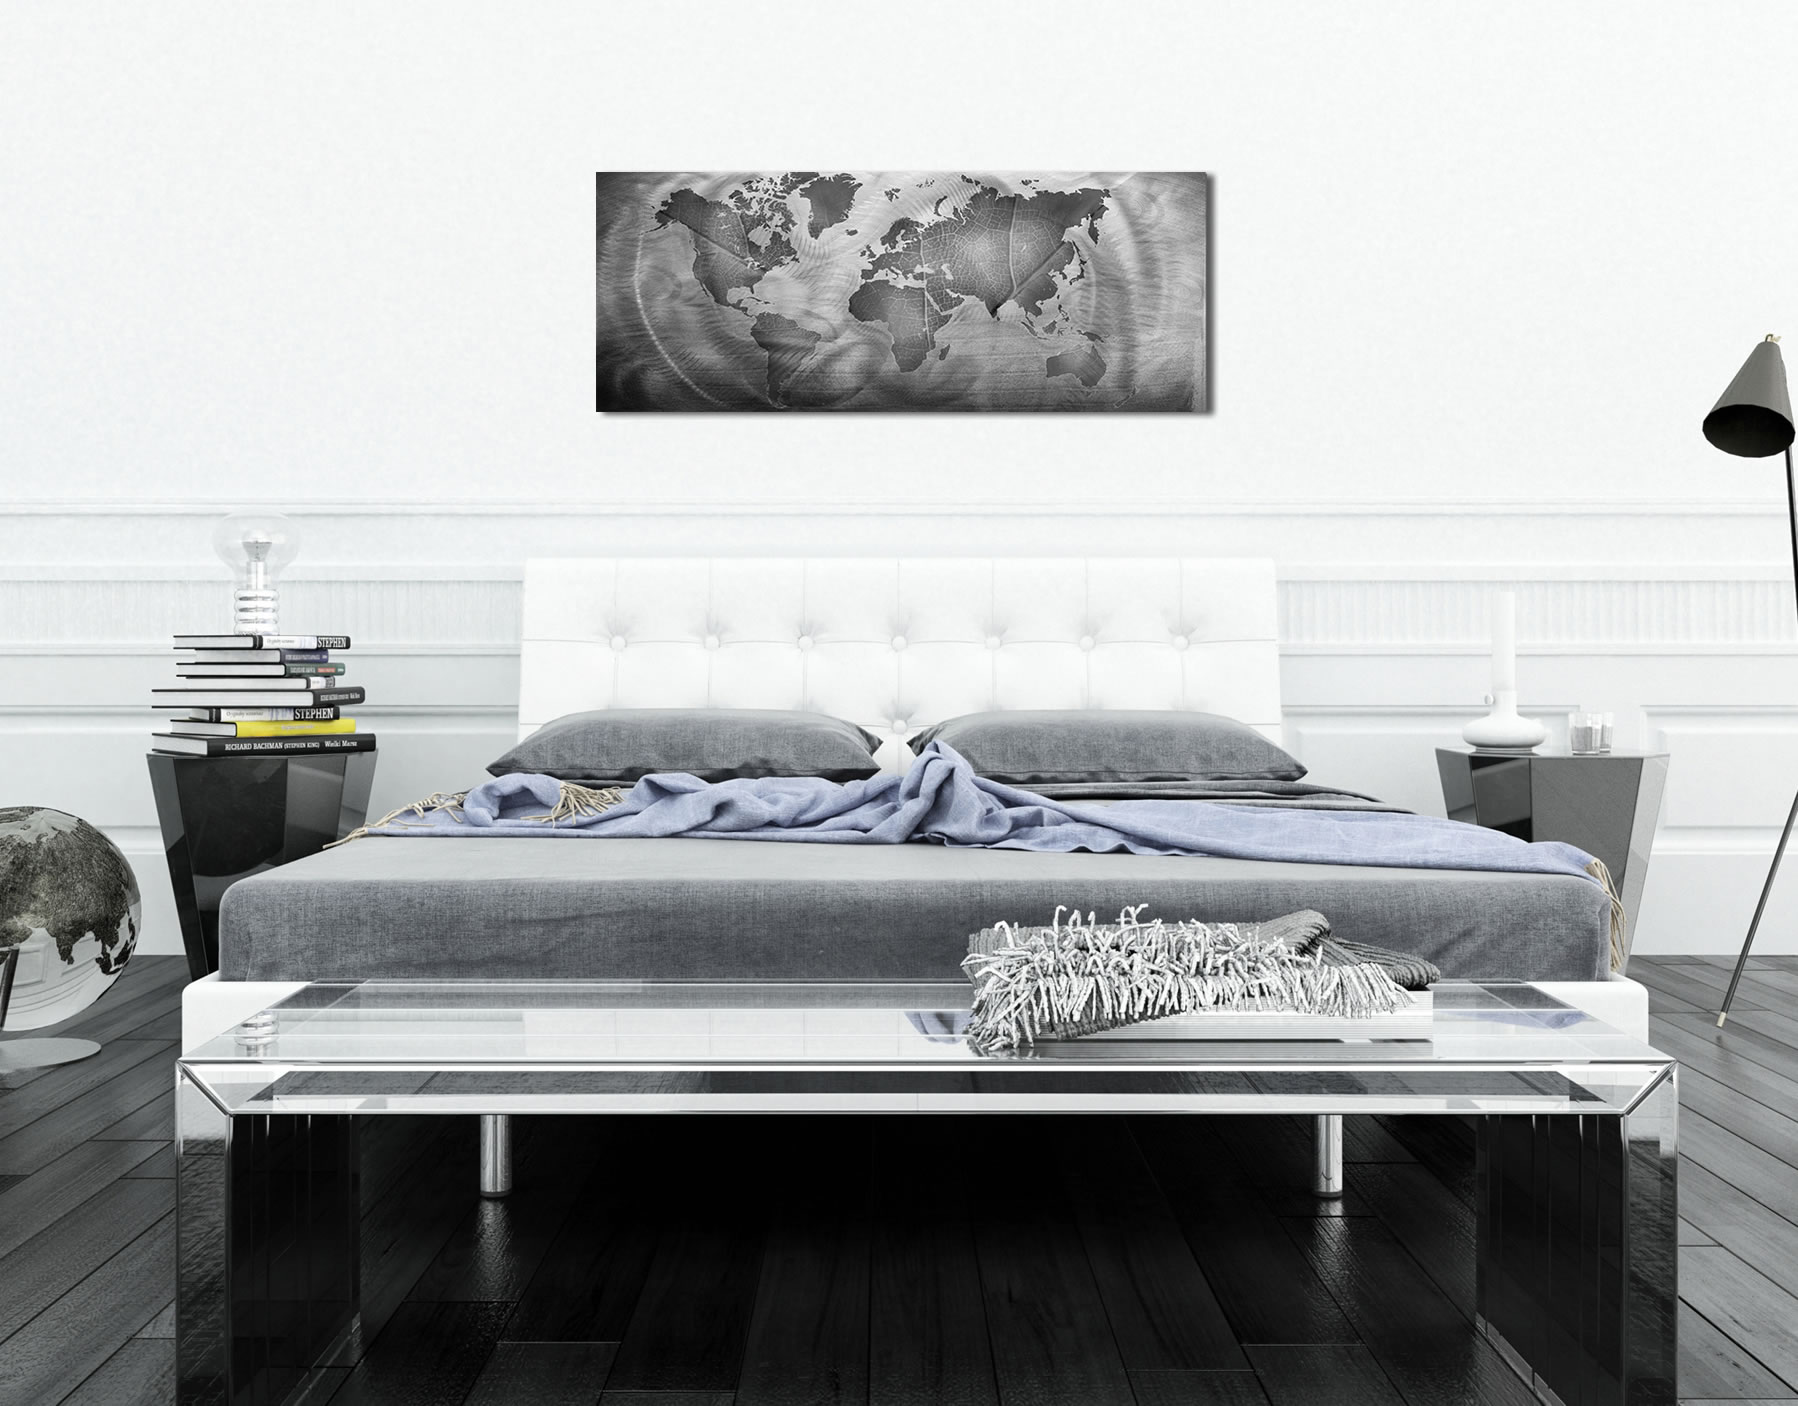 Monochrome Land & Sea - Modern Metal Wall Art - Lifestyle Image